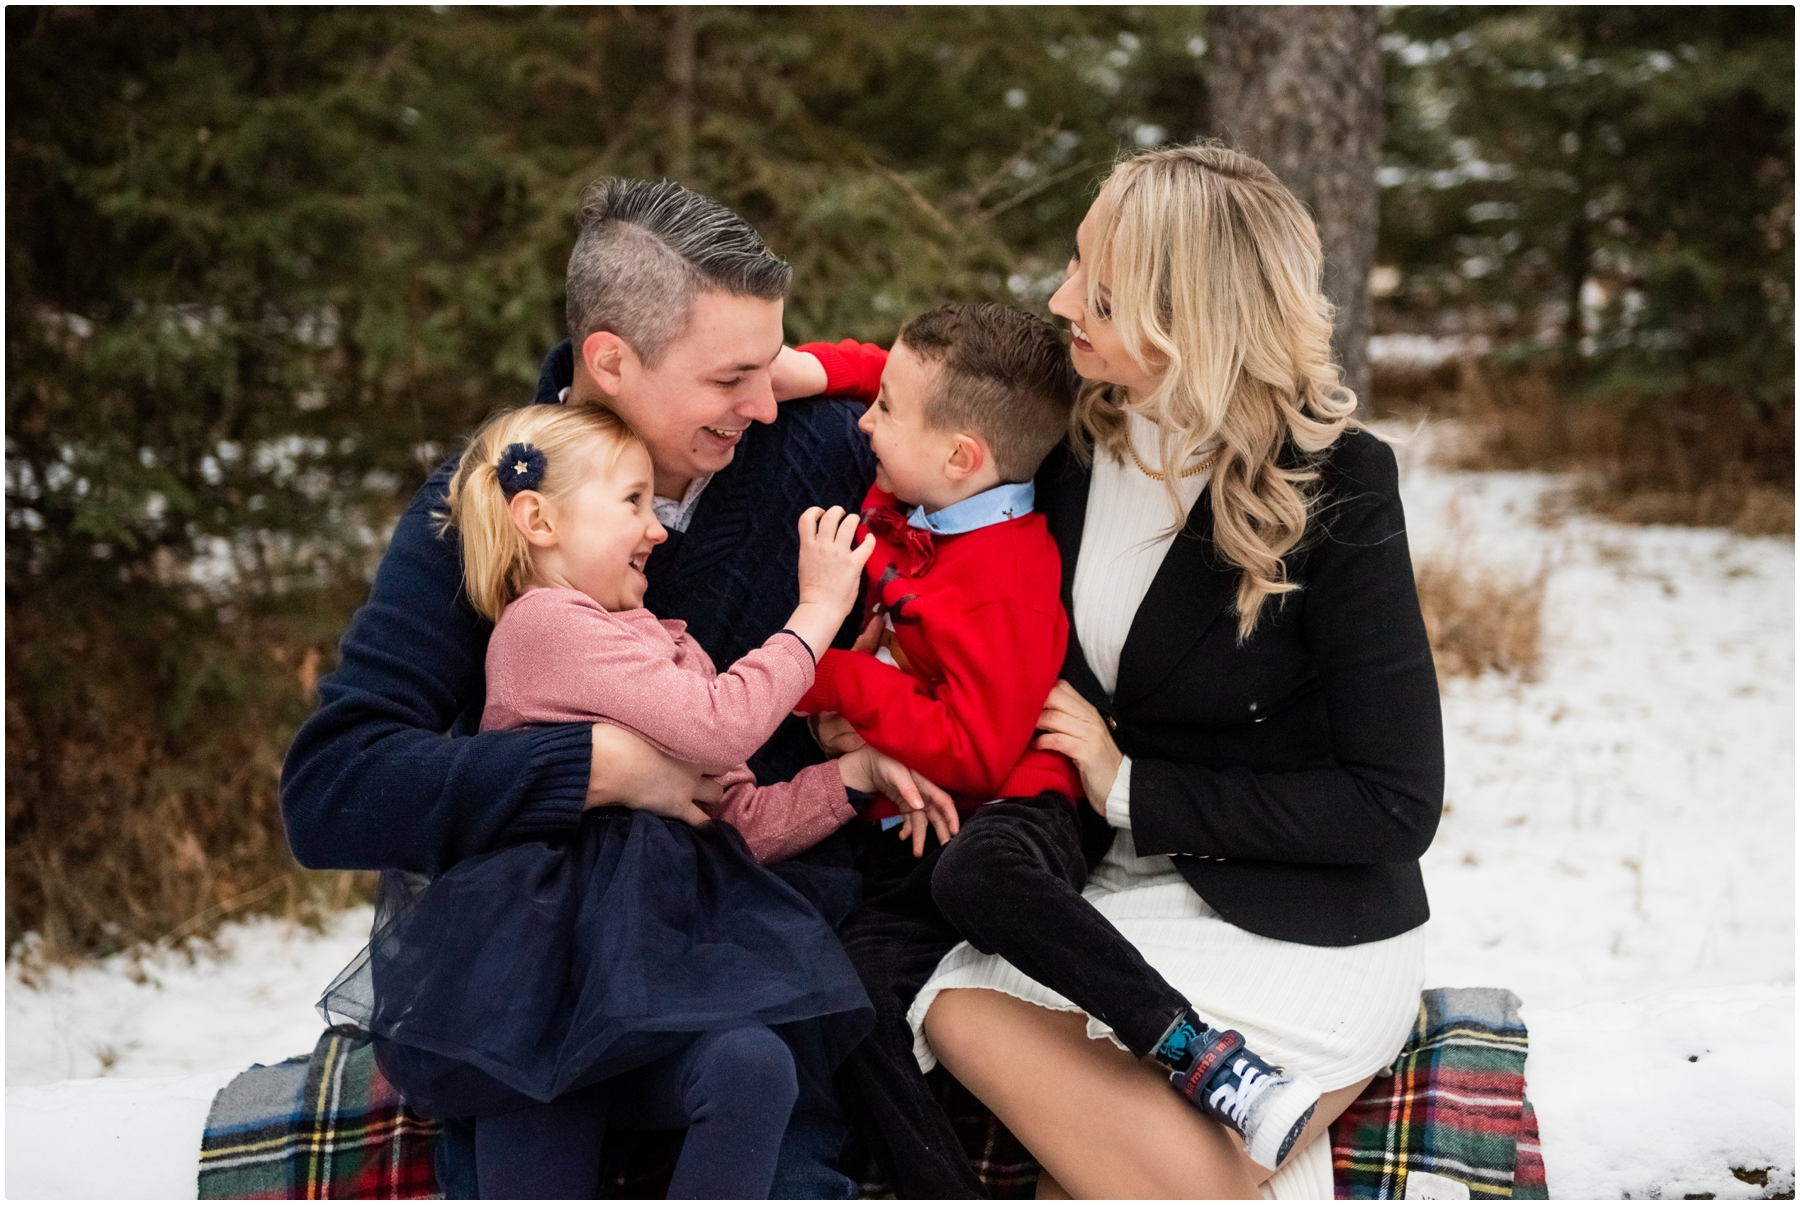 Calgary Alberta Winter Family Photographer - Bebo Grove Fish Creek Park.